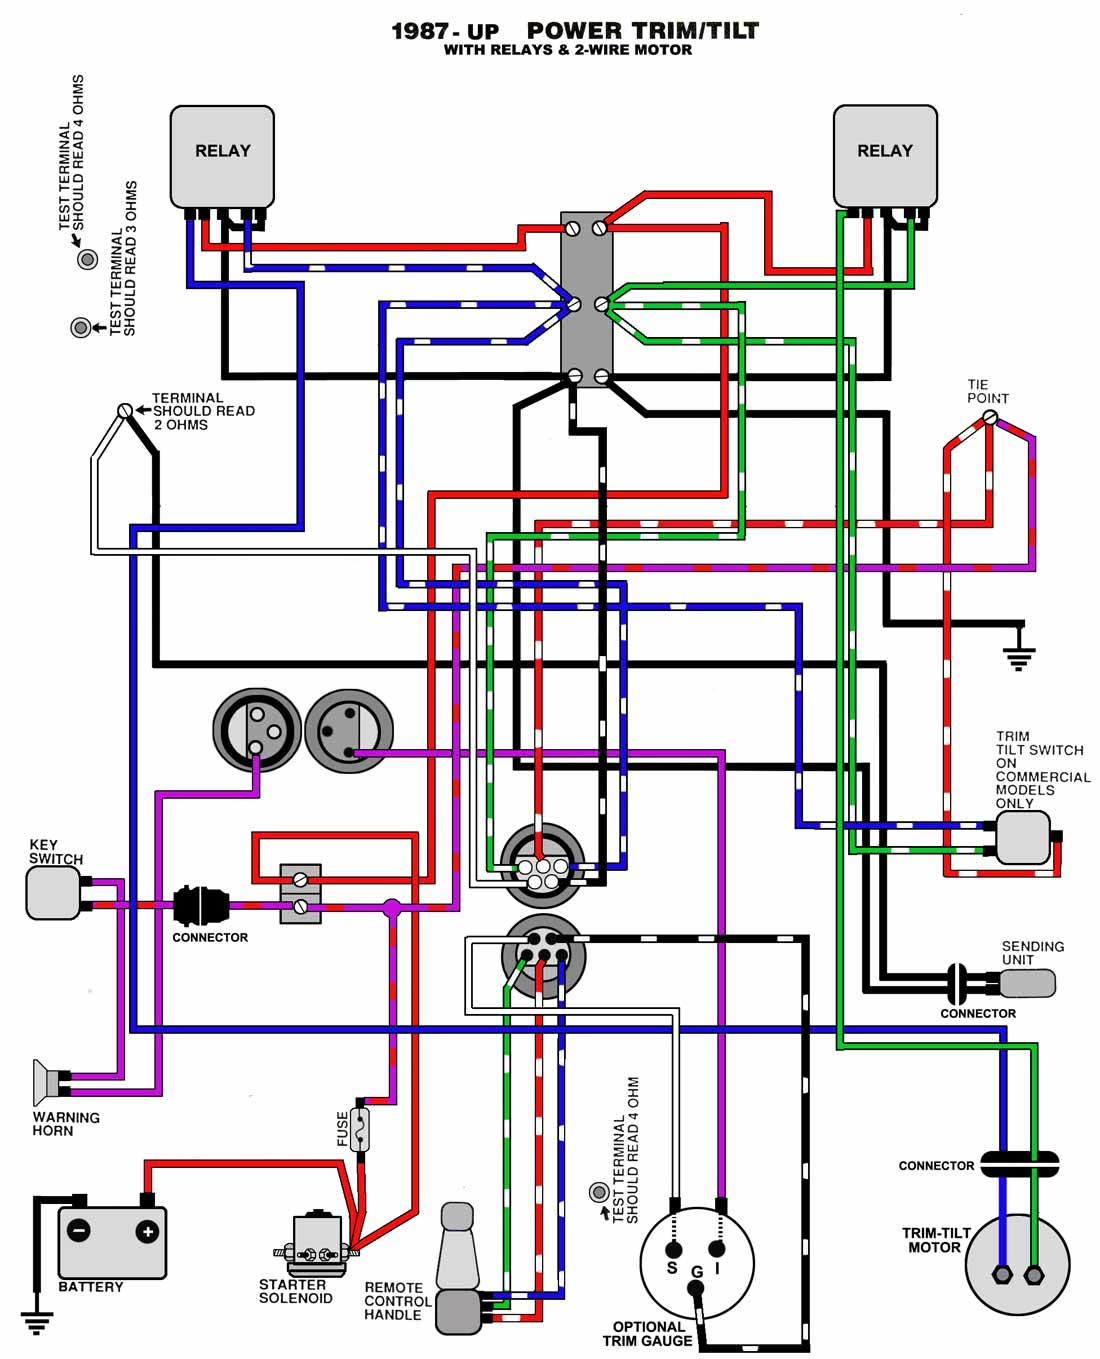 TnT_87_UP mastertech marine evinrude johnson outboard wiring diagrams  at edmiracle.co